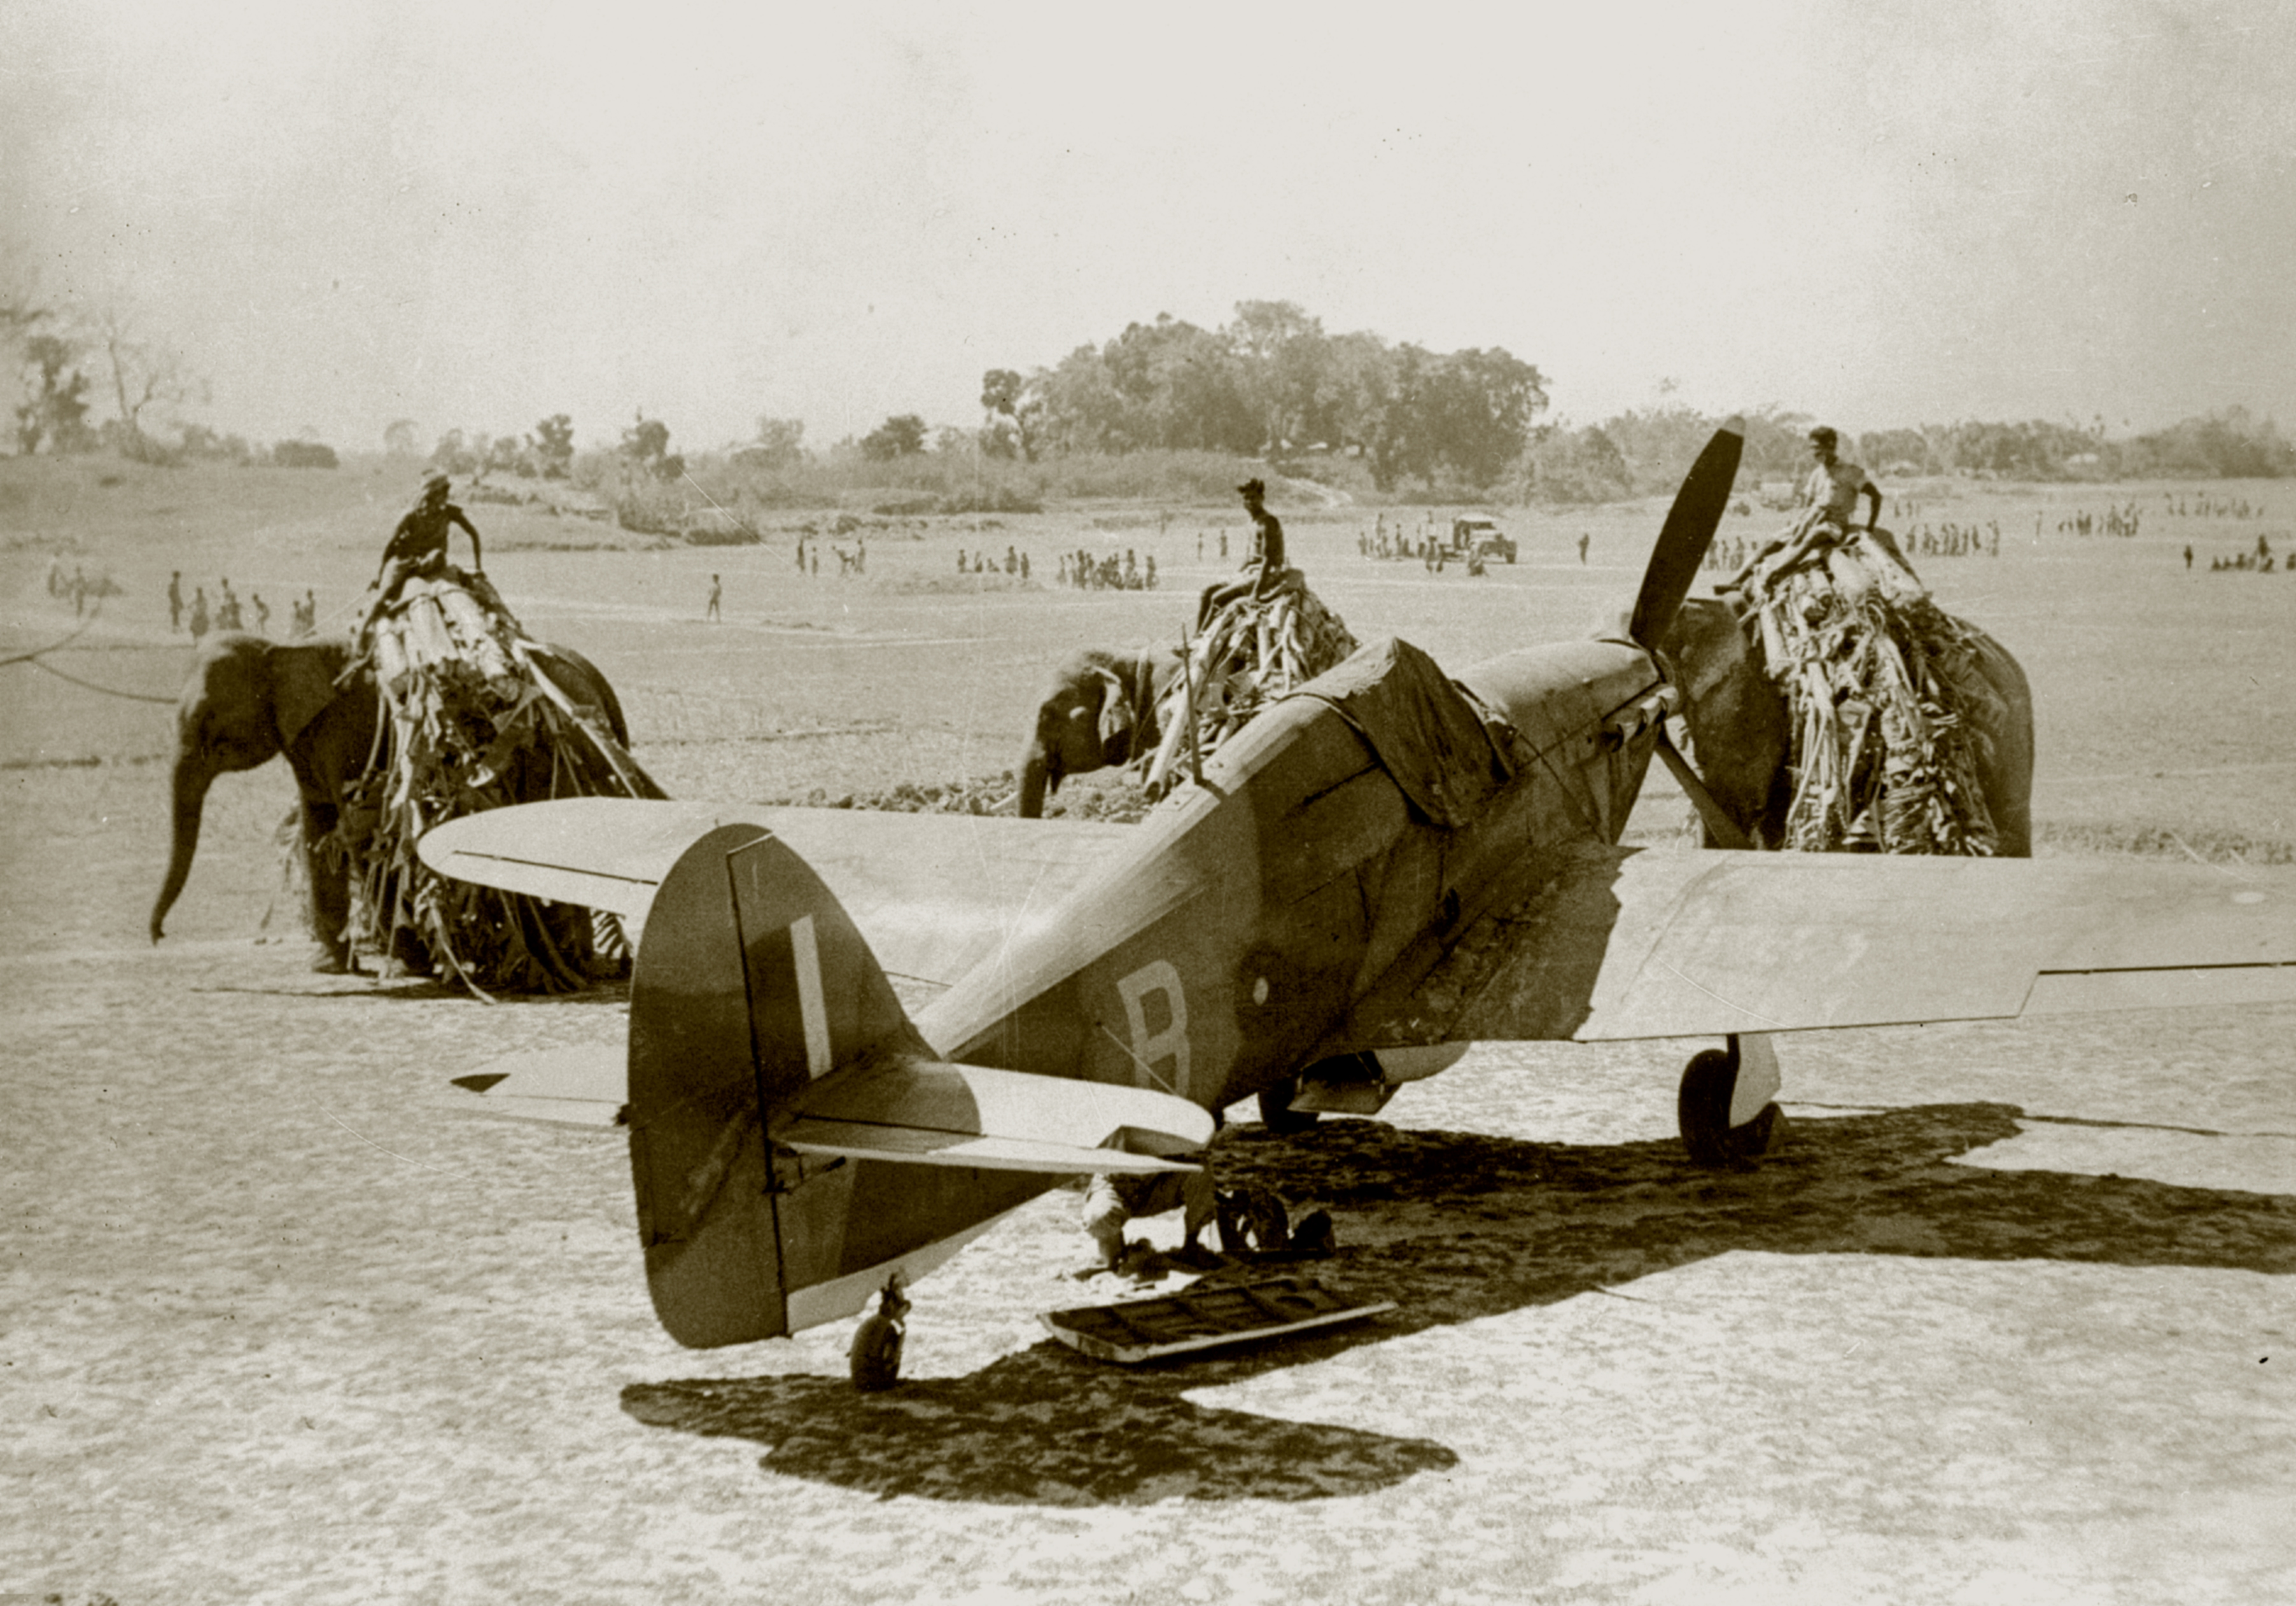 A group of elephants and their riders walking past a RAF Hurricane IIc B 01